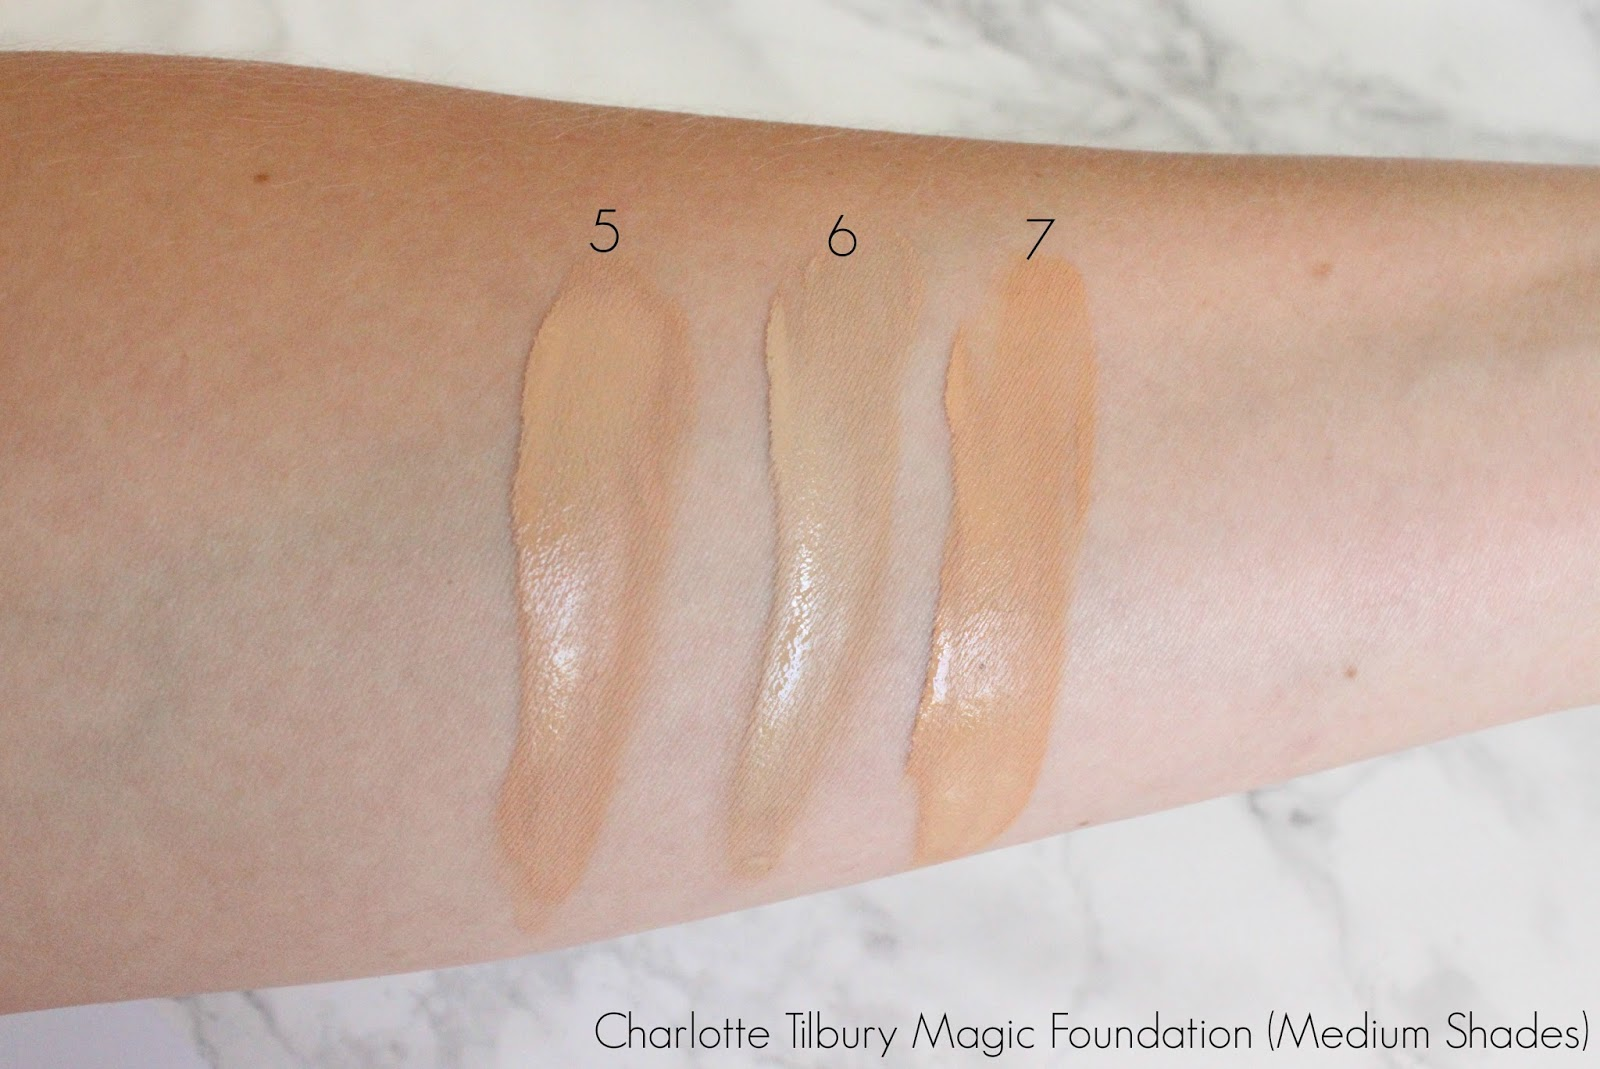 Charlotte Tilbury Magic Foundation Swatches